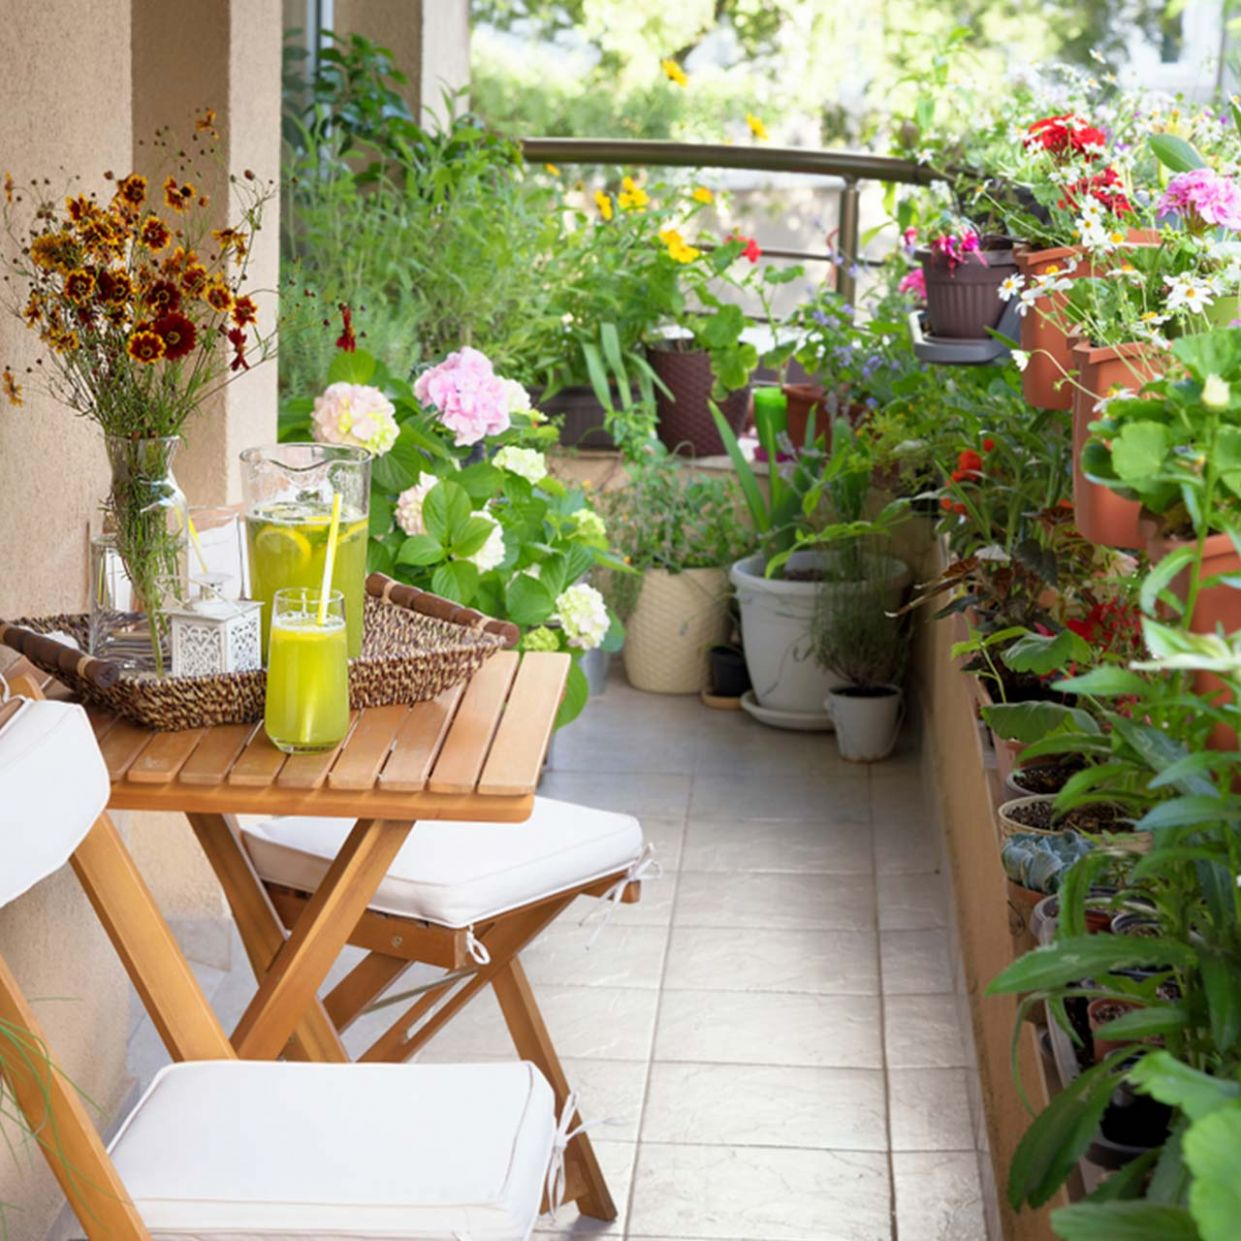 Balcony Design Ideas for Indian Homes and Apartments   Design Cafe - balcony ideas india